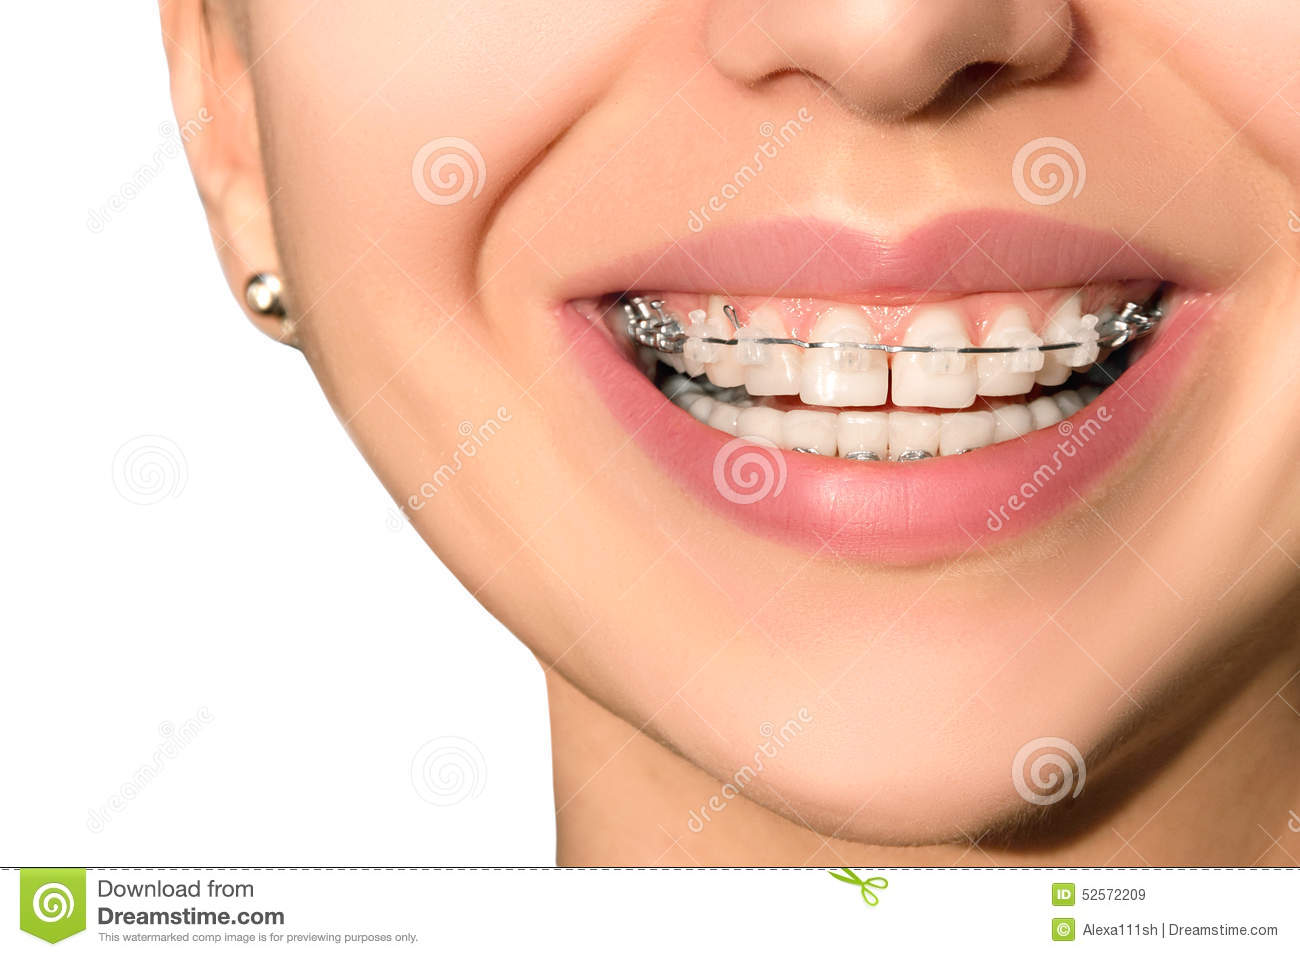 Ceramic dental braces teeth female smile stock photo for Bagues dentaires interieur